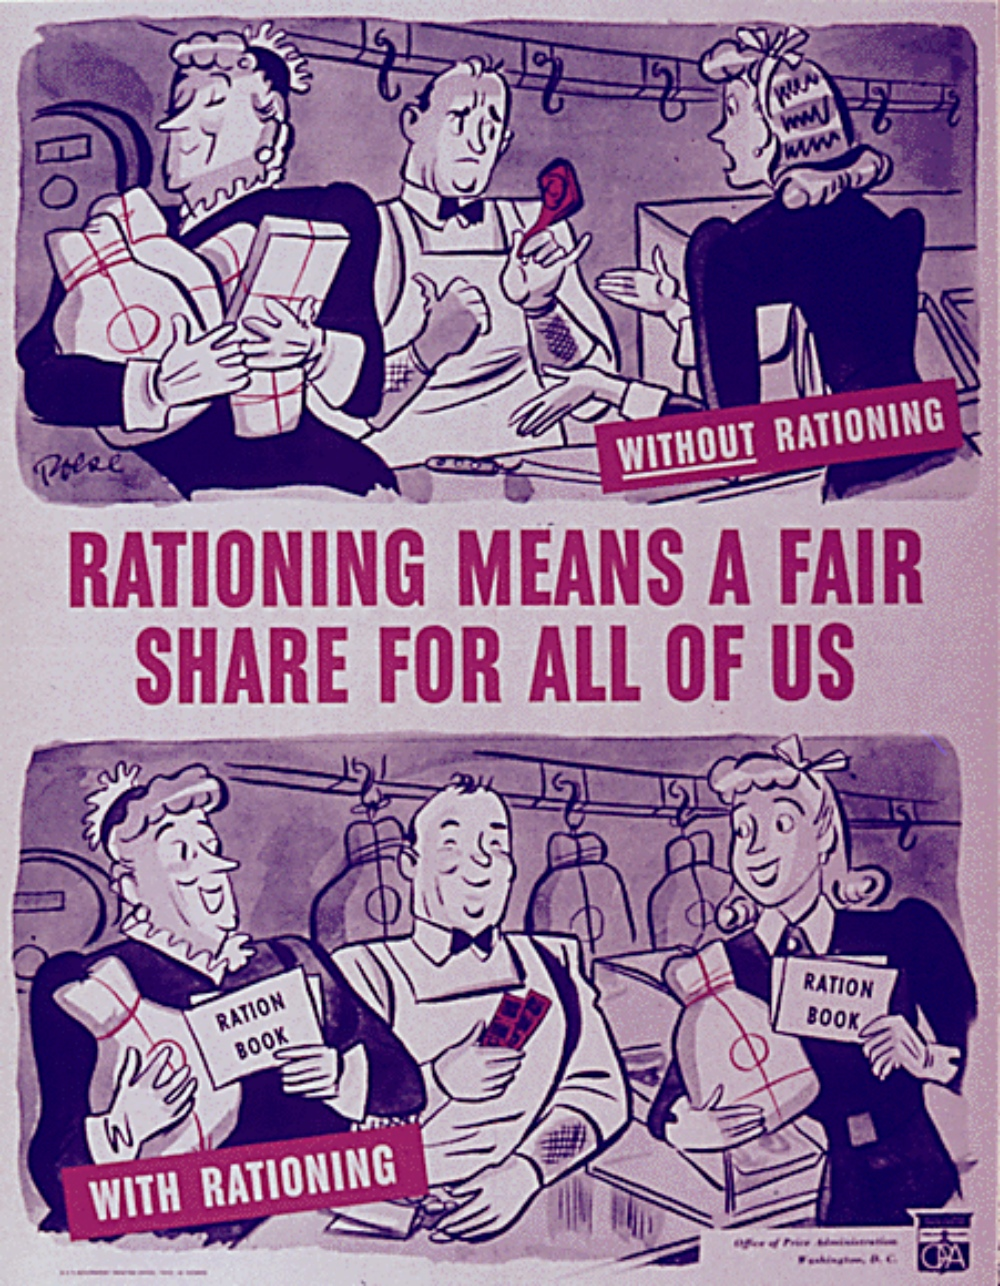 rationing poster from WWII